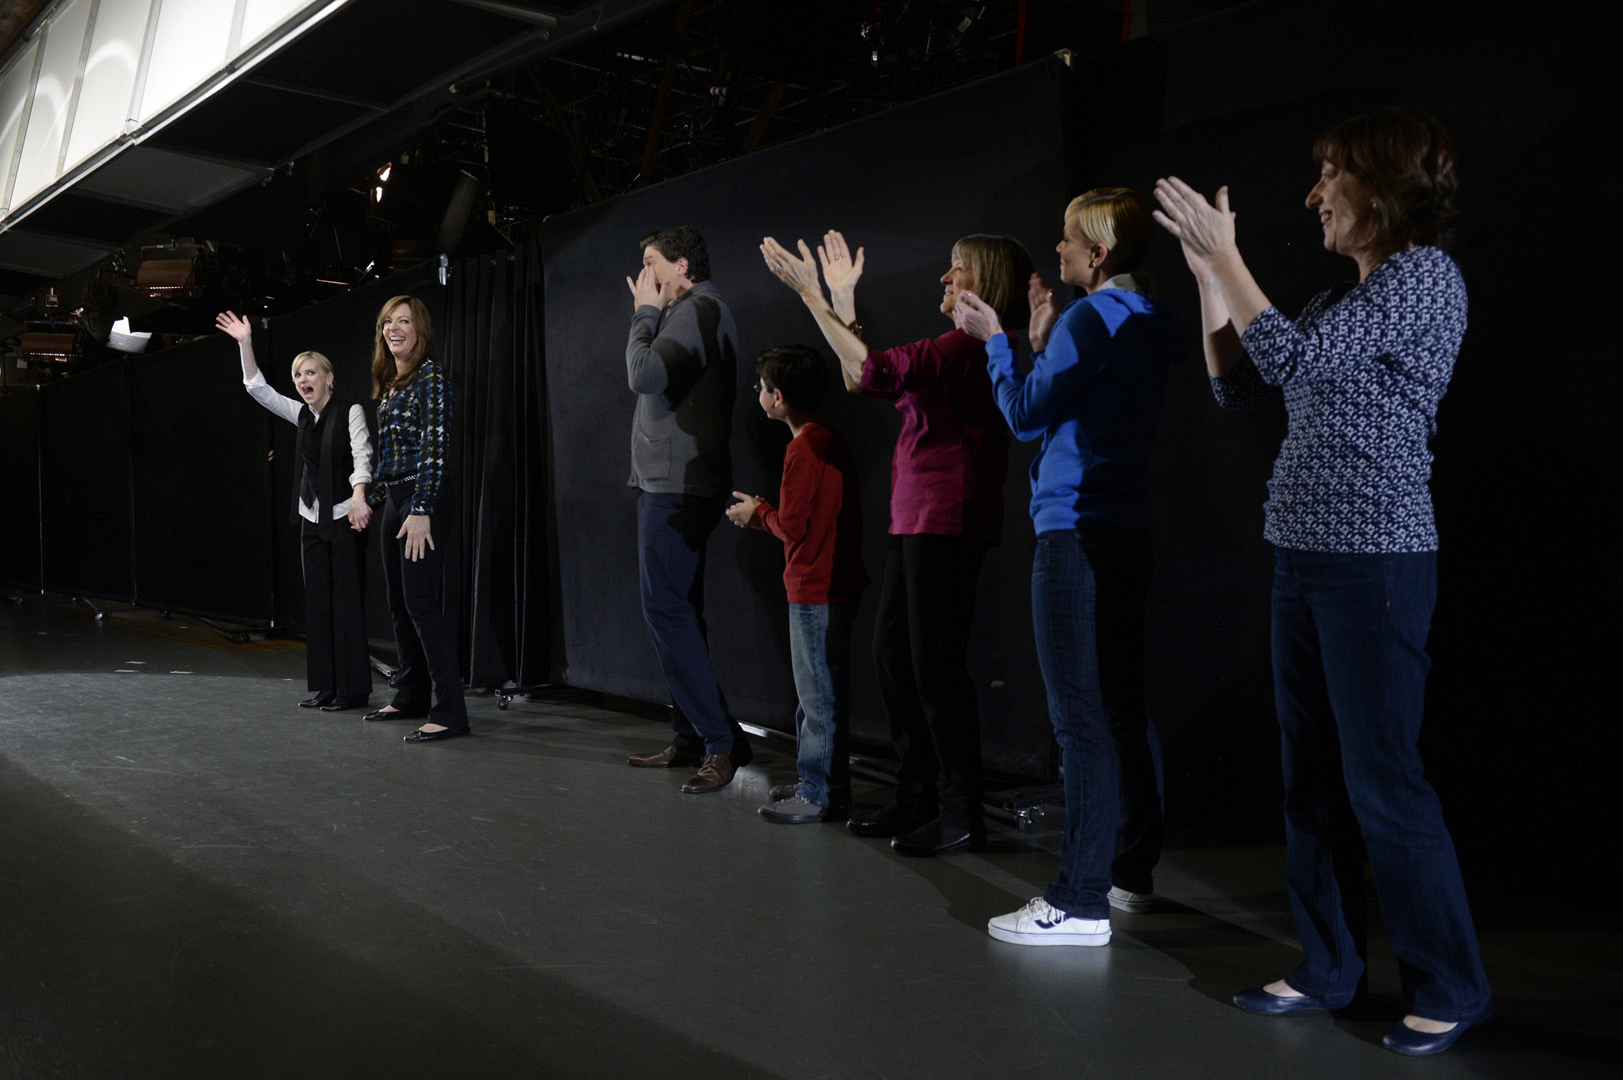 Anna Faris, Allison Janney, and other members of the Mom cast give their live audience a big round of applause.